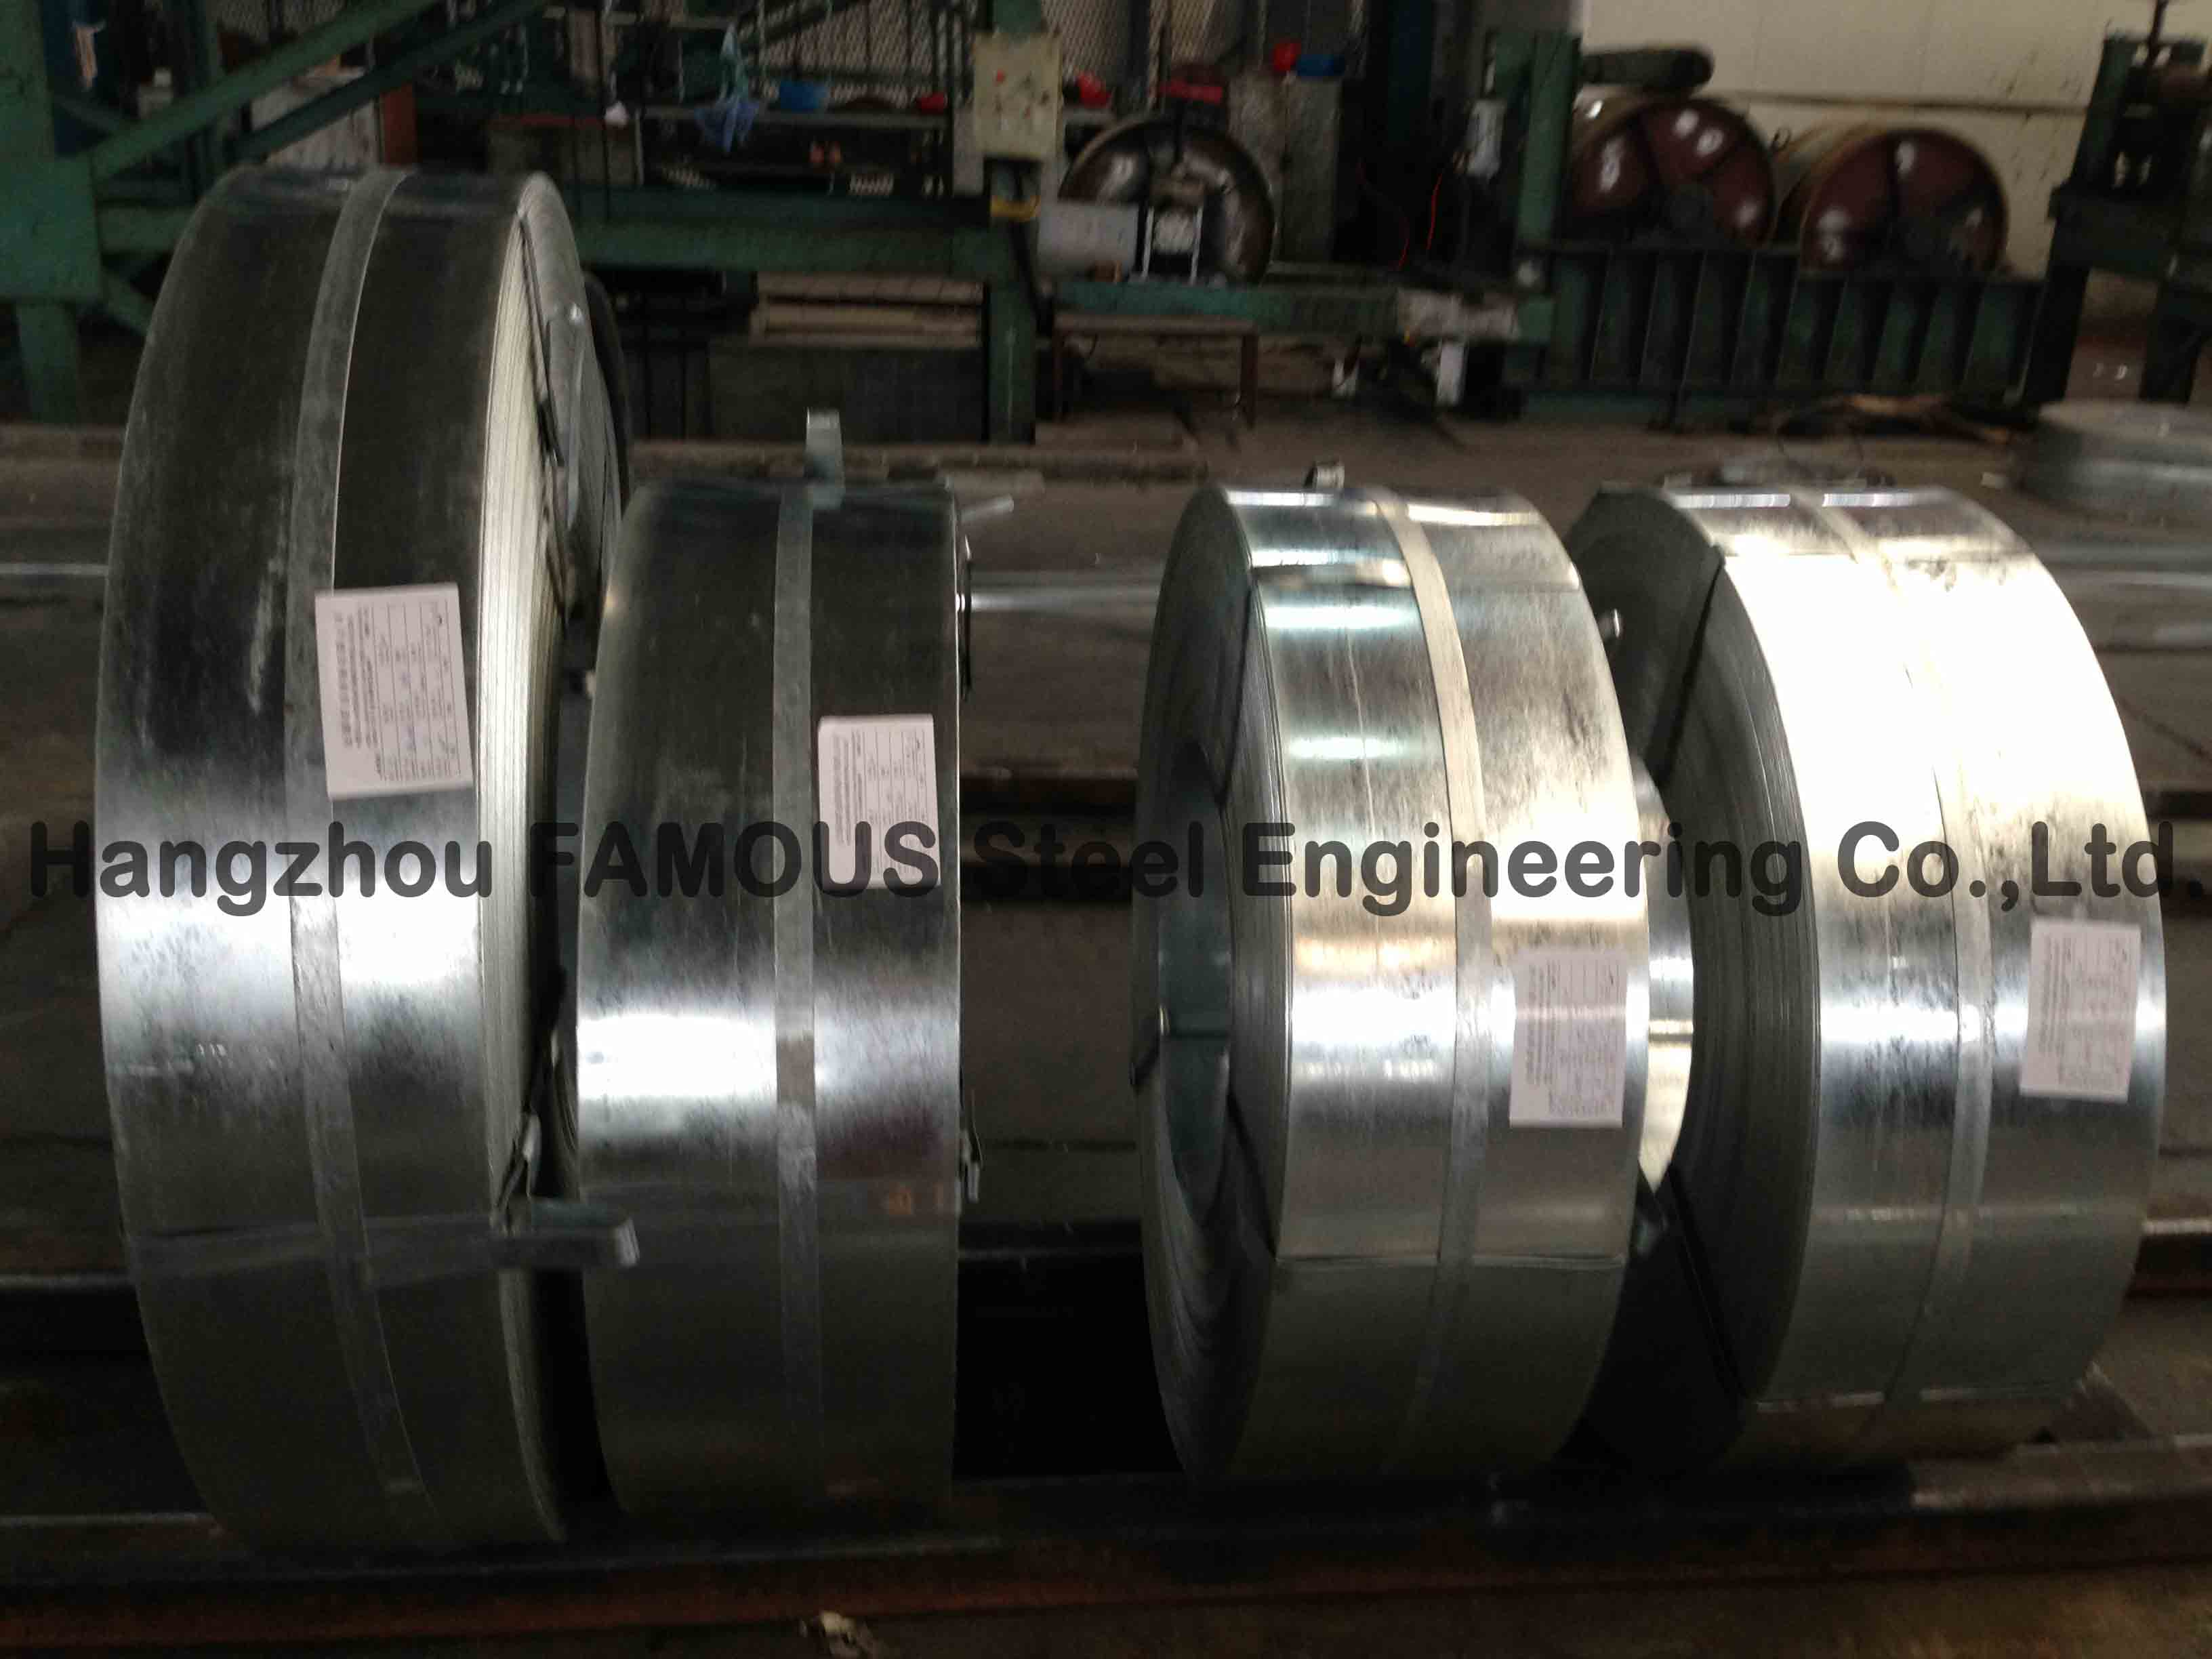 Cold Rolled Hot Dipped Galvanized Steel Strip Galvanized Steel Coil 600mm - 1500mm Width